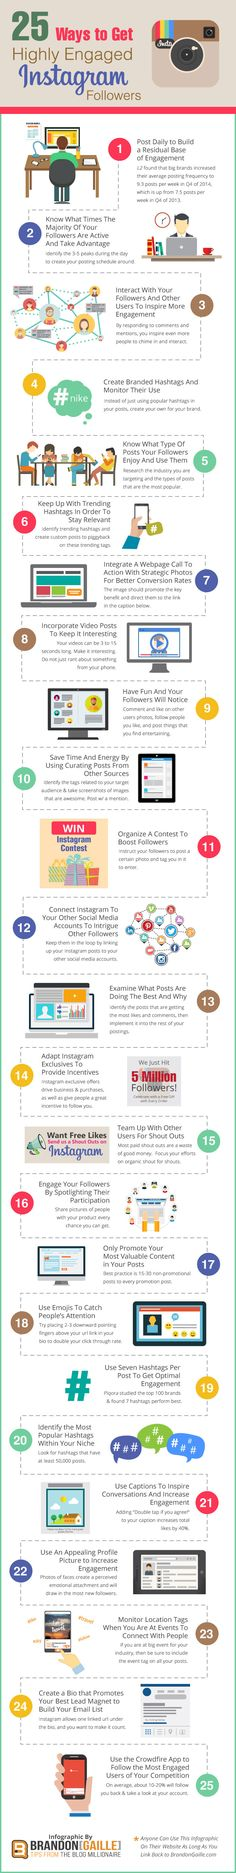 25 Ways To Get Instagram Followers - Infographic